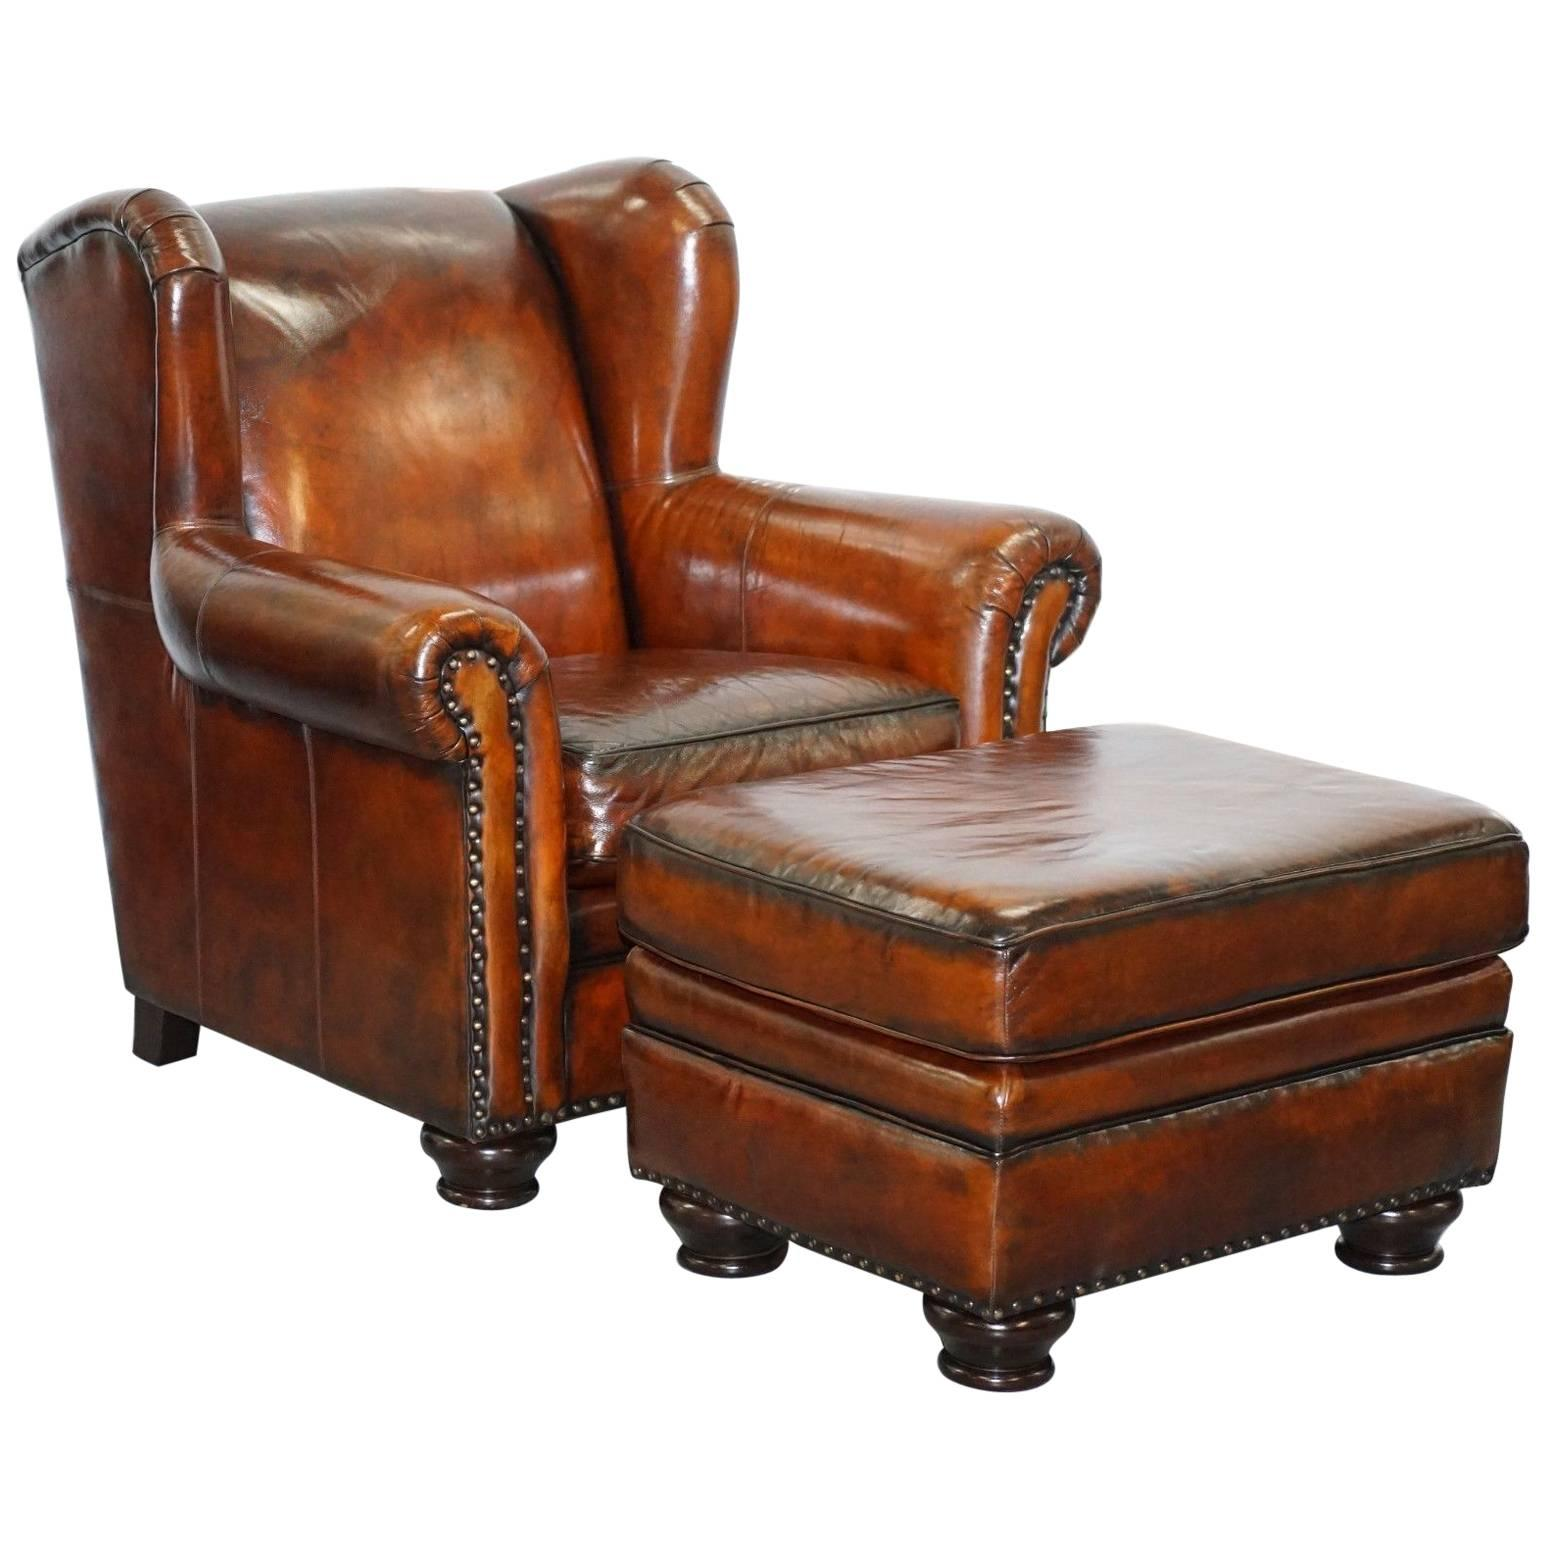 Ordinaire Stunning Restored Bernhardt Thick Brown Leather Armchair And Footstool